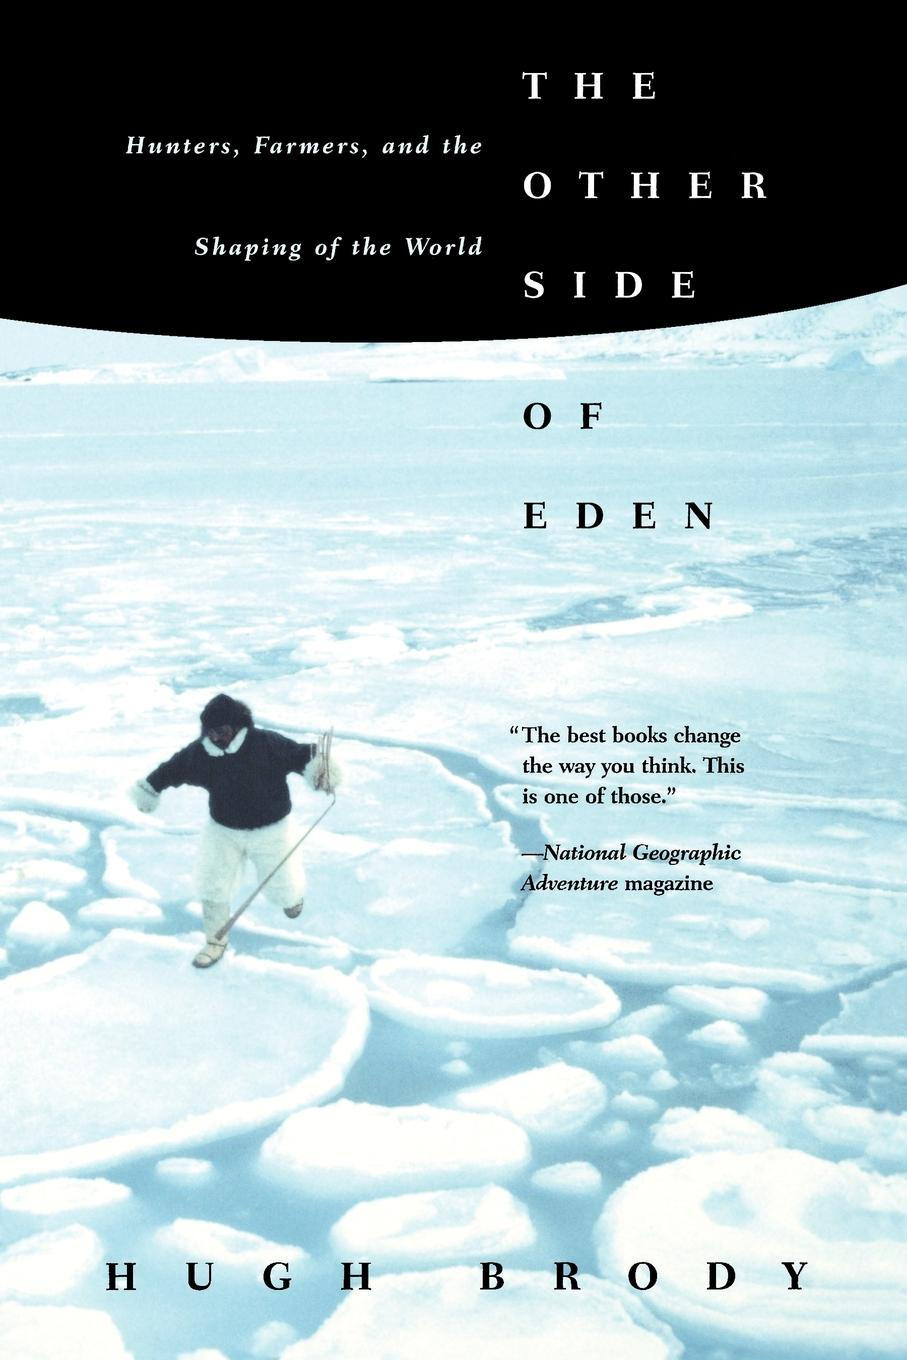 Hugh Brody The Other Side of Eden. Hunters, Farmers, and the Shaping of the World other farmers paradise 100ml